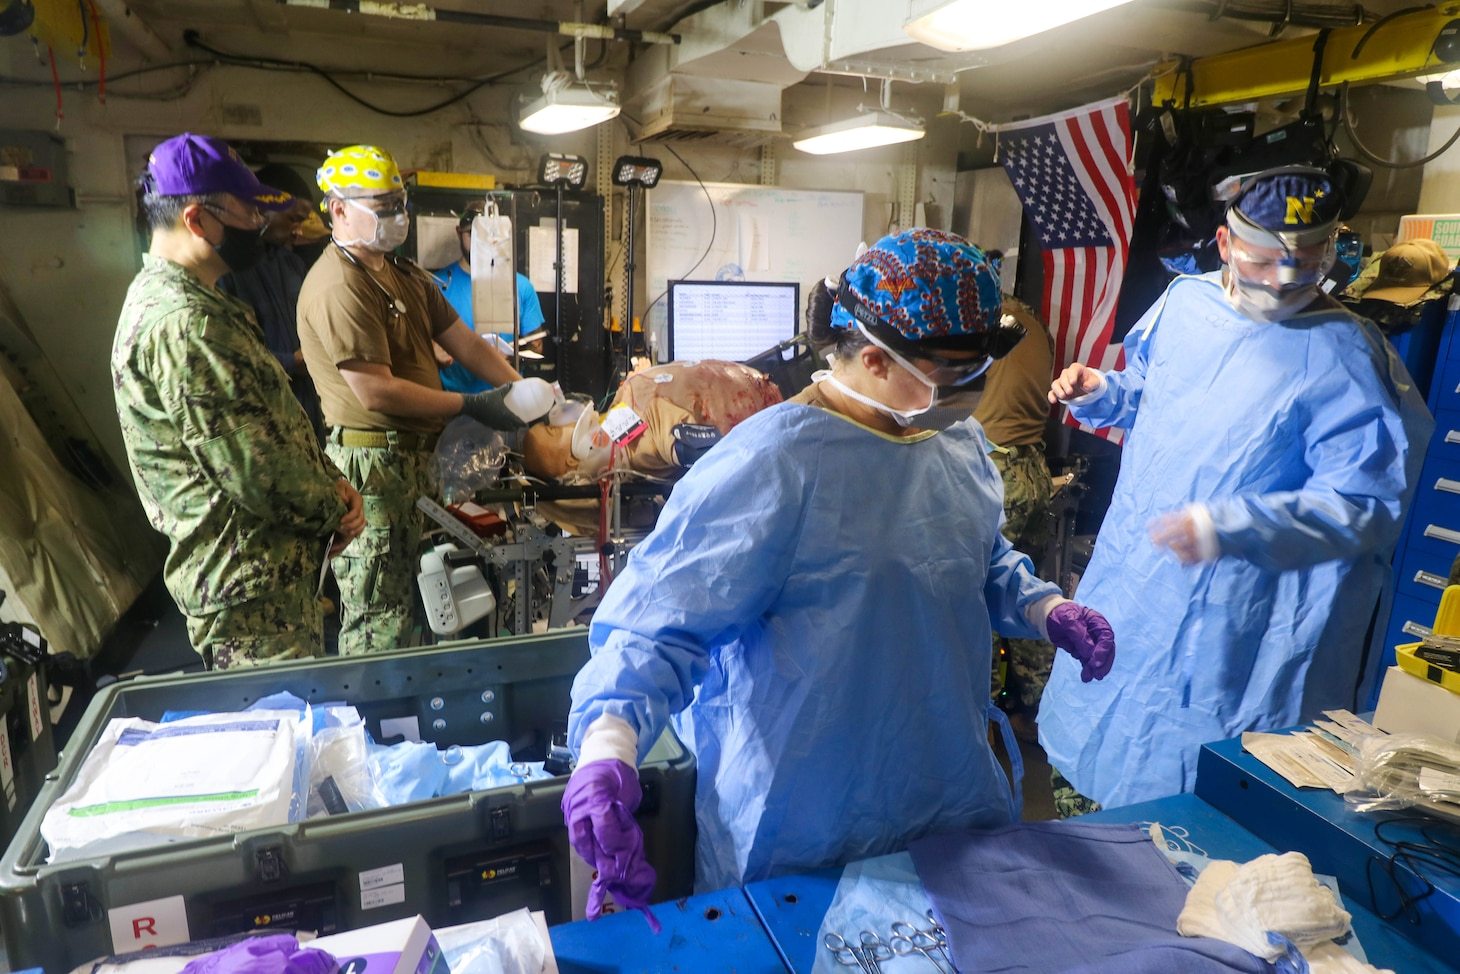 NAVAL STATION NORFOLK (Aug. 14, 2021) –Members of Fleet Surgical Team 4 begin surgery on a simulated crash victim during a mass casualty drill aboard the dock landing ship USS Whidbey Island (LSD 41), the lead ship of its class of the same name, in support of Large Scale Exercise (LSE) 2021. LSE 2021 demonstrates the Navy's ability to employ precise, lethal, and overwhelming force globally across three naval component commands, five numbered fleets, and 17 time zones. (U.S. Navy photo by Ens. Drew Hendricks)